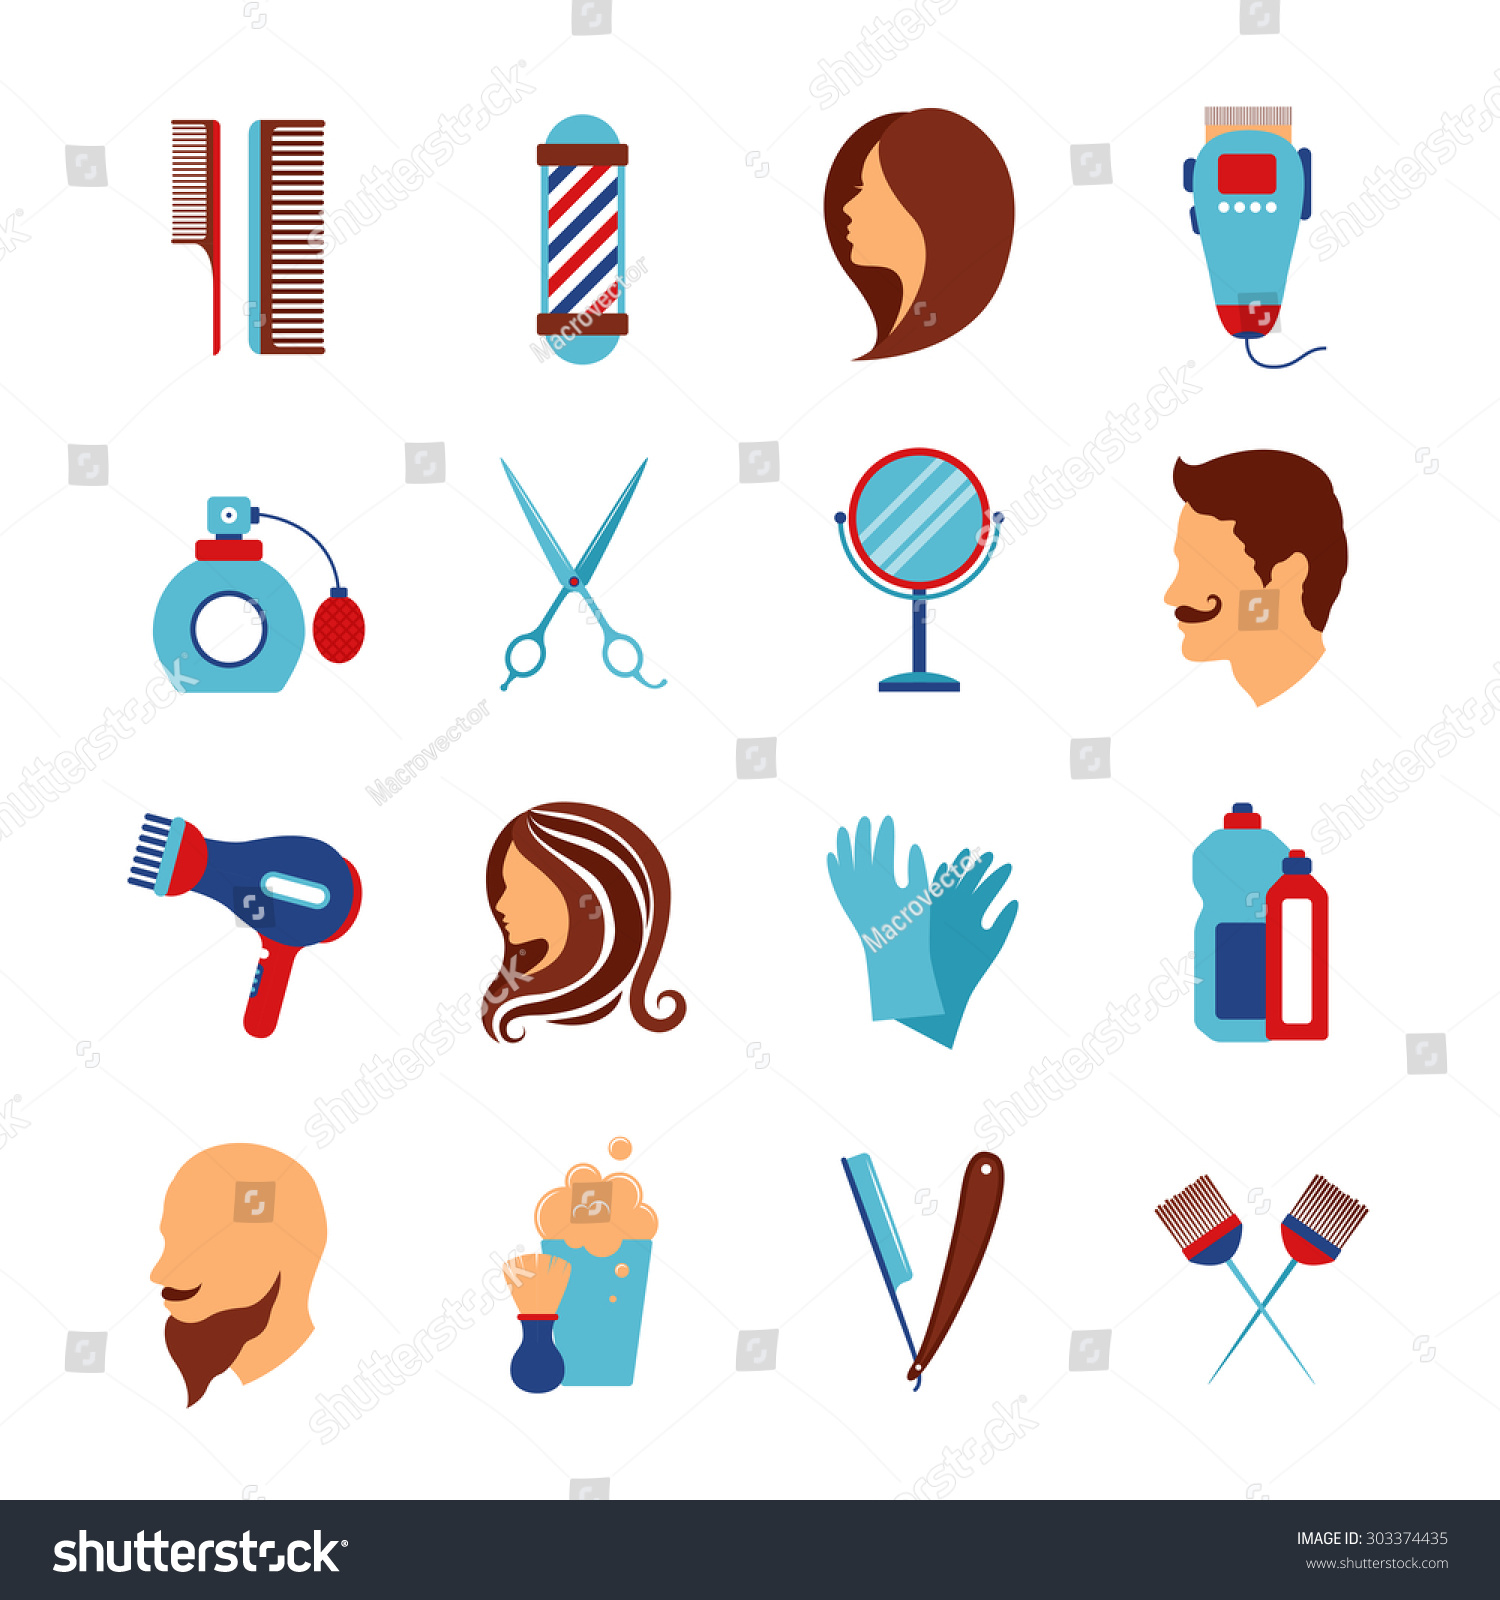 Hair salon chair isolated stock photos illustrations and vector art - Barber Shop And Hairdressing Beauty Salon Accessories For Hair Styling Flat Icons Set Abstract Vector Isolated